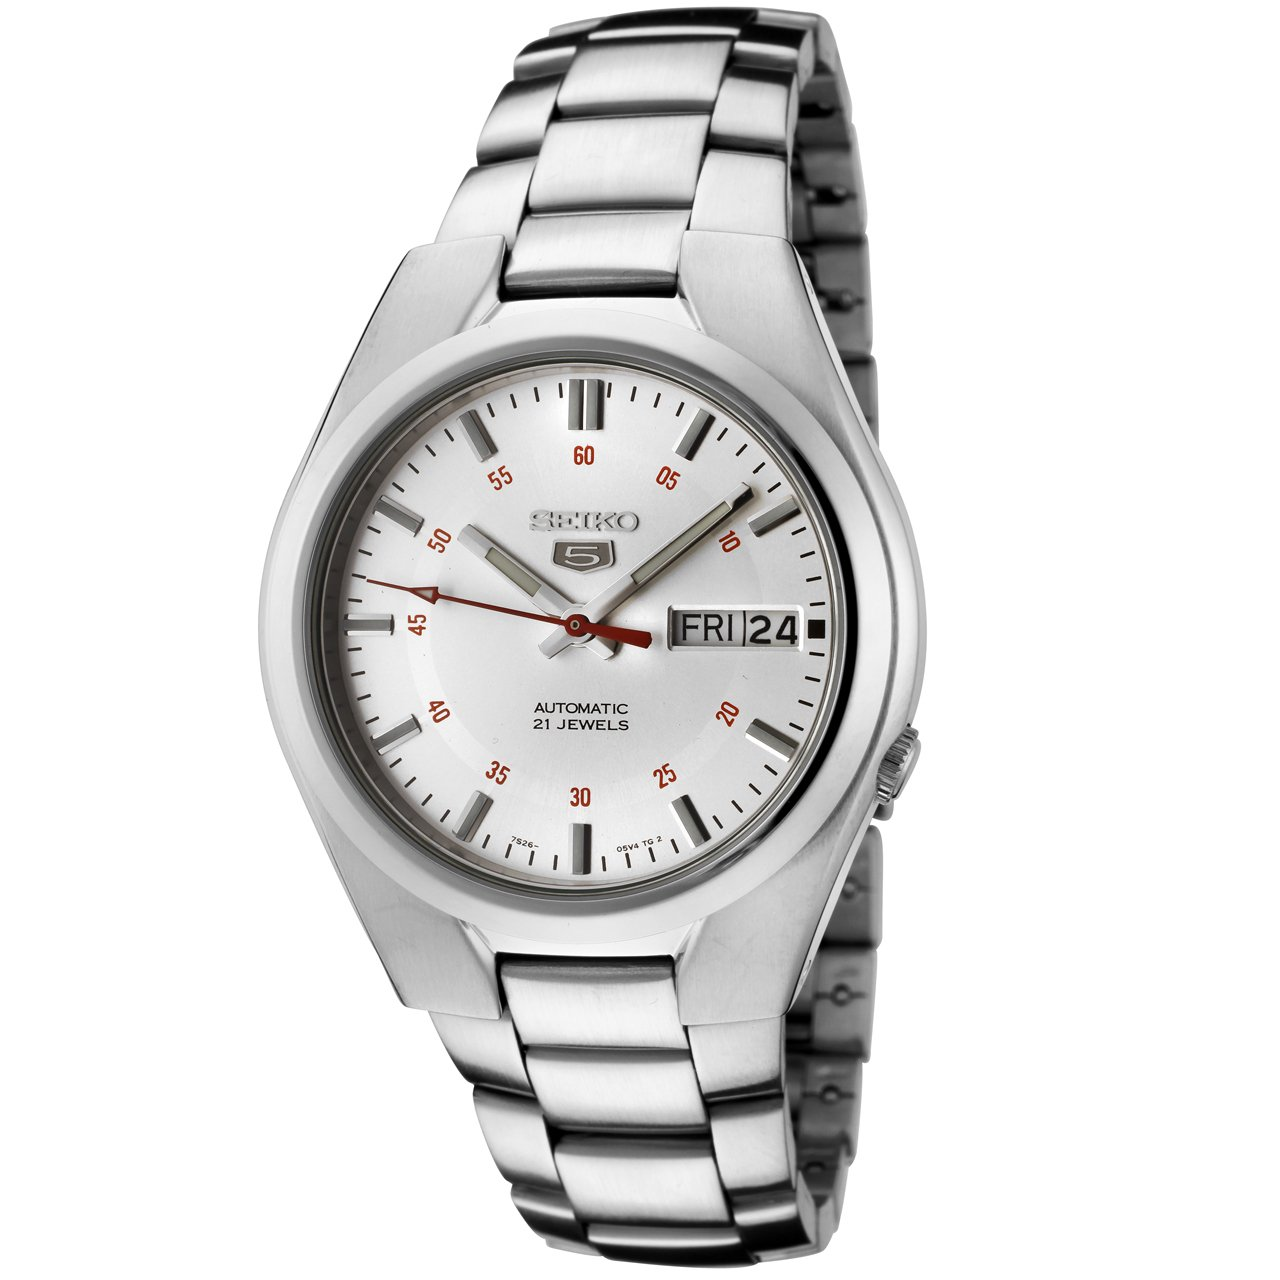 Seiko Men's SNK613 Seiko 5 Automatic Silver Dial Stainless Steel Watch 	$59.63